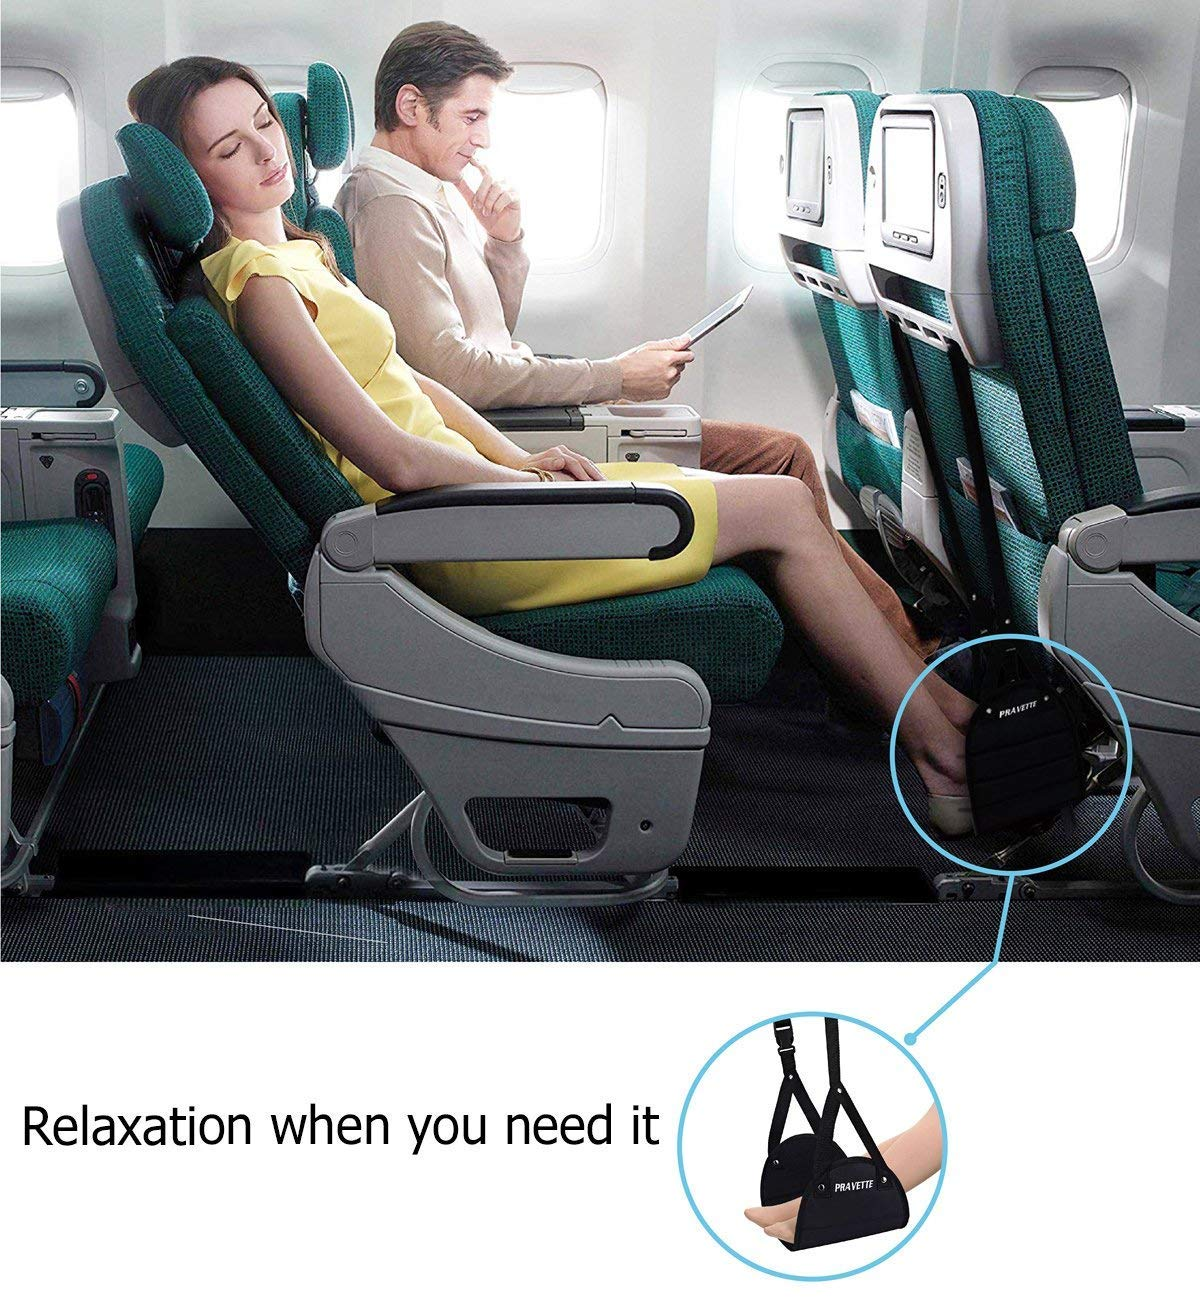 PRAVETTE Foot Rest,Travel Footrest Airplane Leg Rest Flight Foot Hammock Carry-on Travel Pillow Under Desk Accessories by PRAVETTE (Image #6)